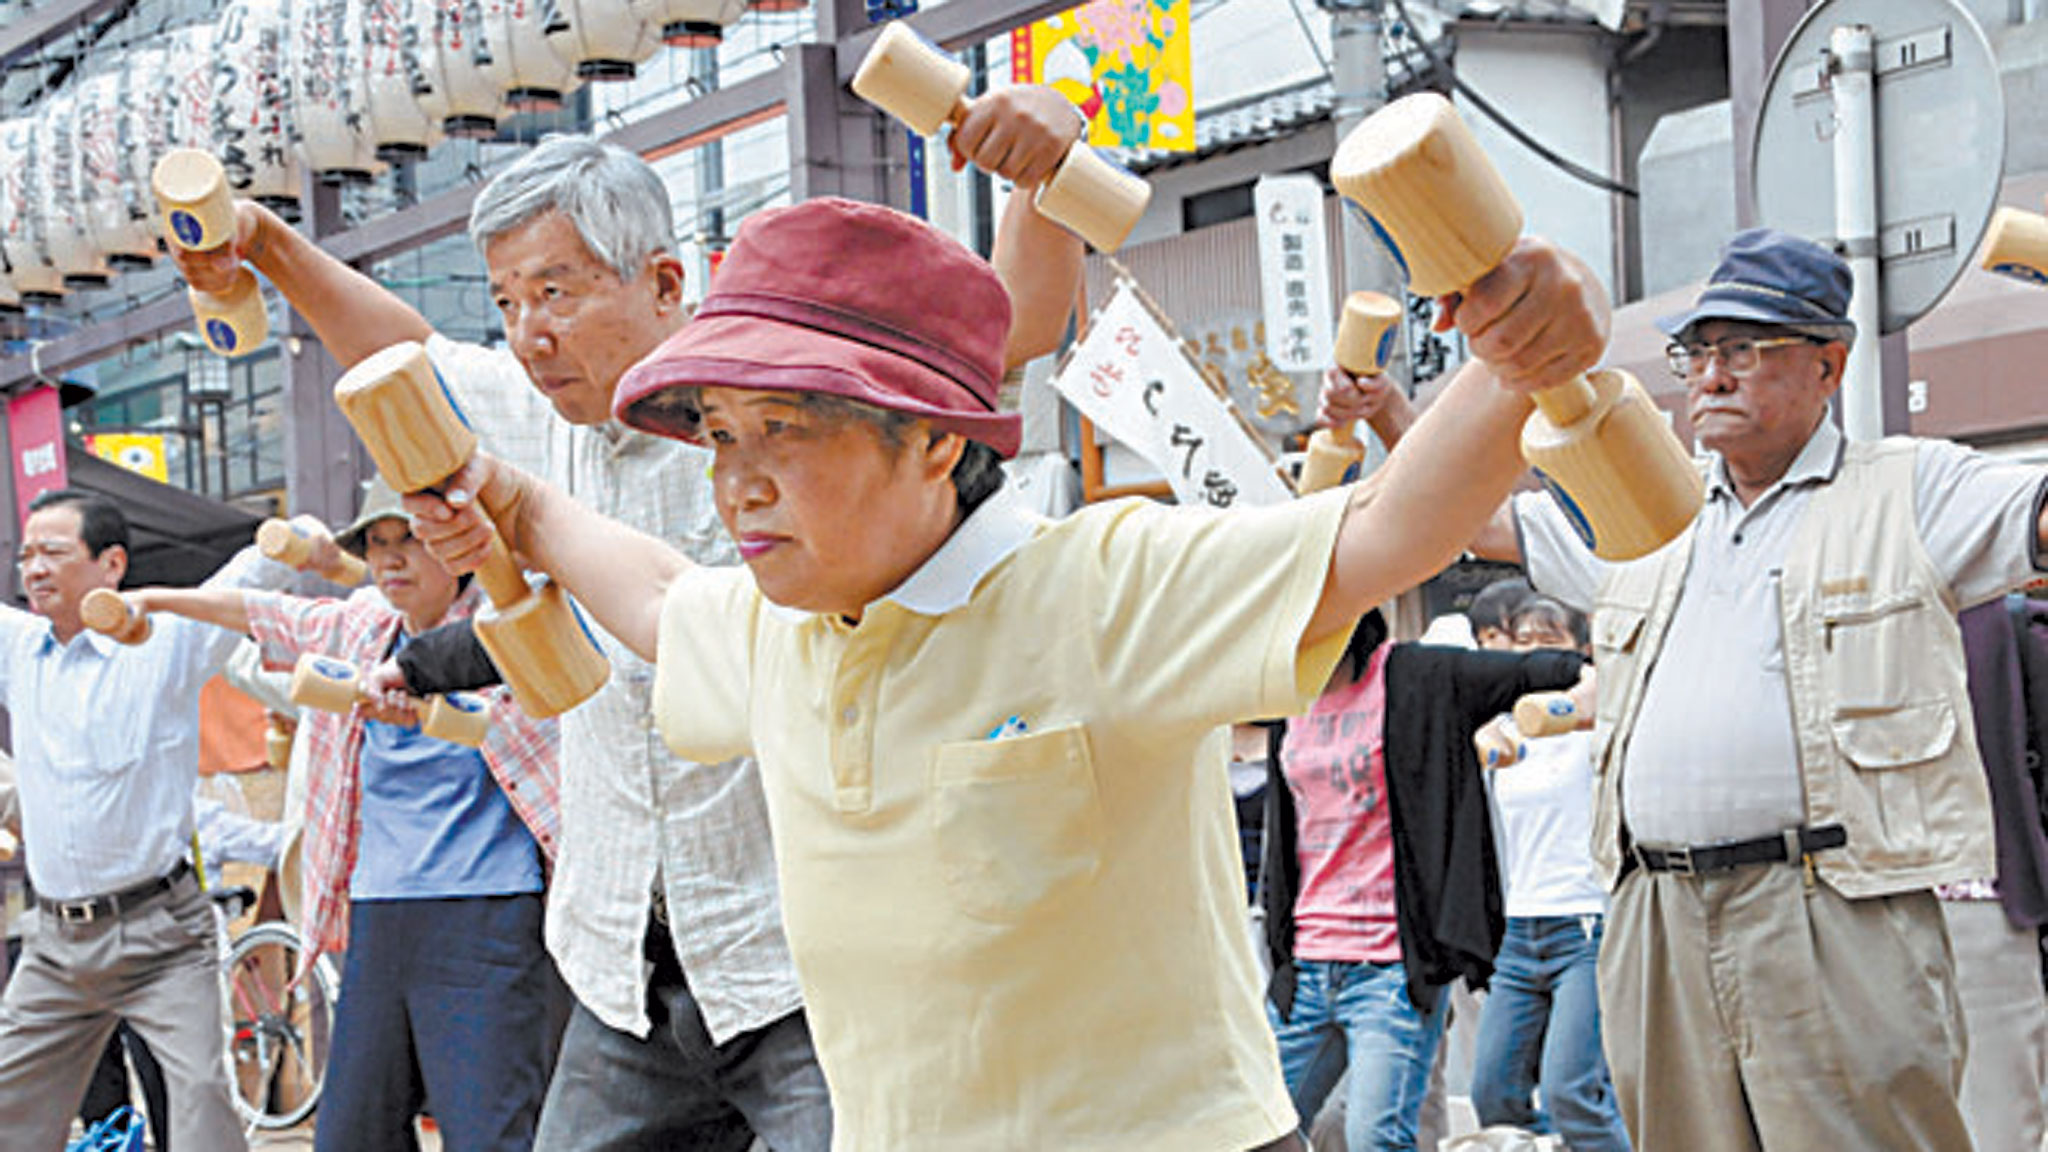 japan aging population The statistics bureau and the director-general for policy planning of japan play the central role in the official statistical system in producing and disseminating basic official statistics,and coordinating statistical work under the statistics act and other legislation.